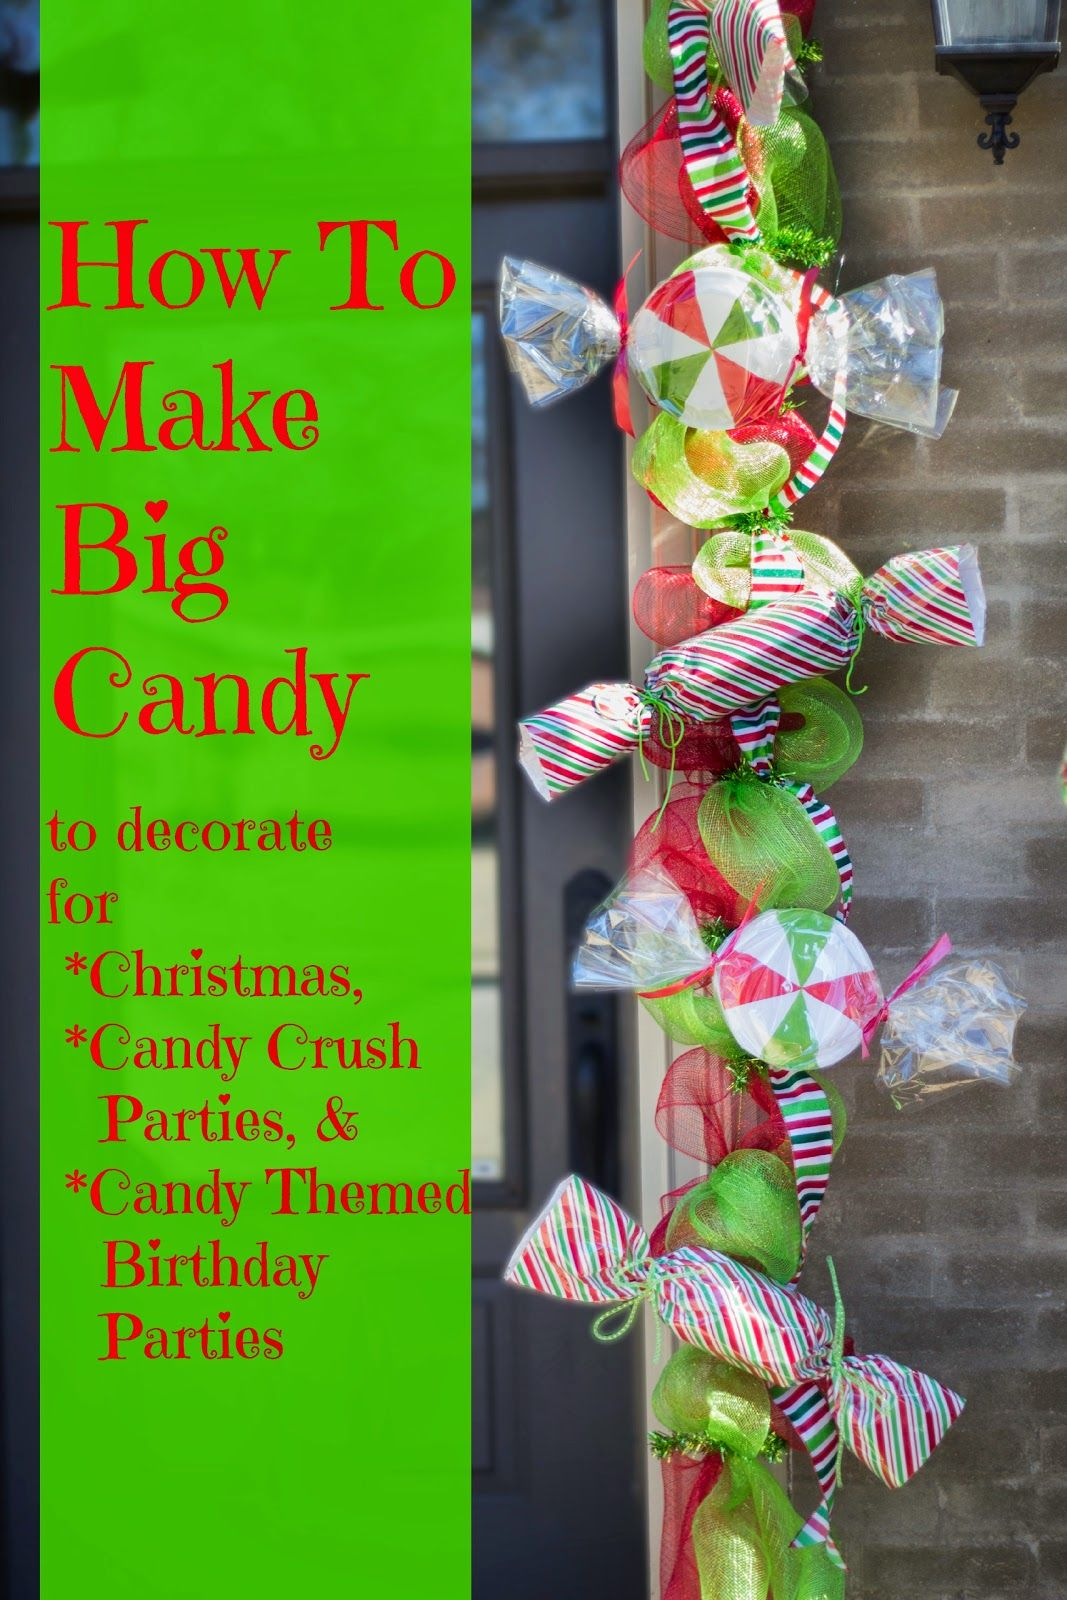 Big Candy Cane Decorations Want Some Ideas On How To Make Inexpensive But Large Candy